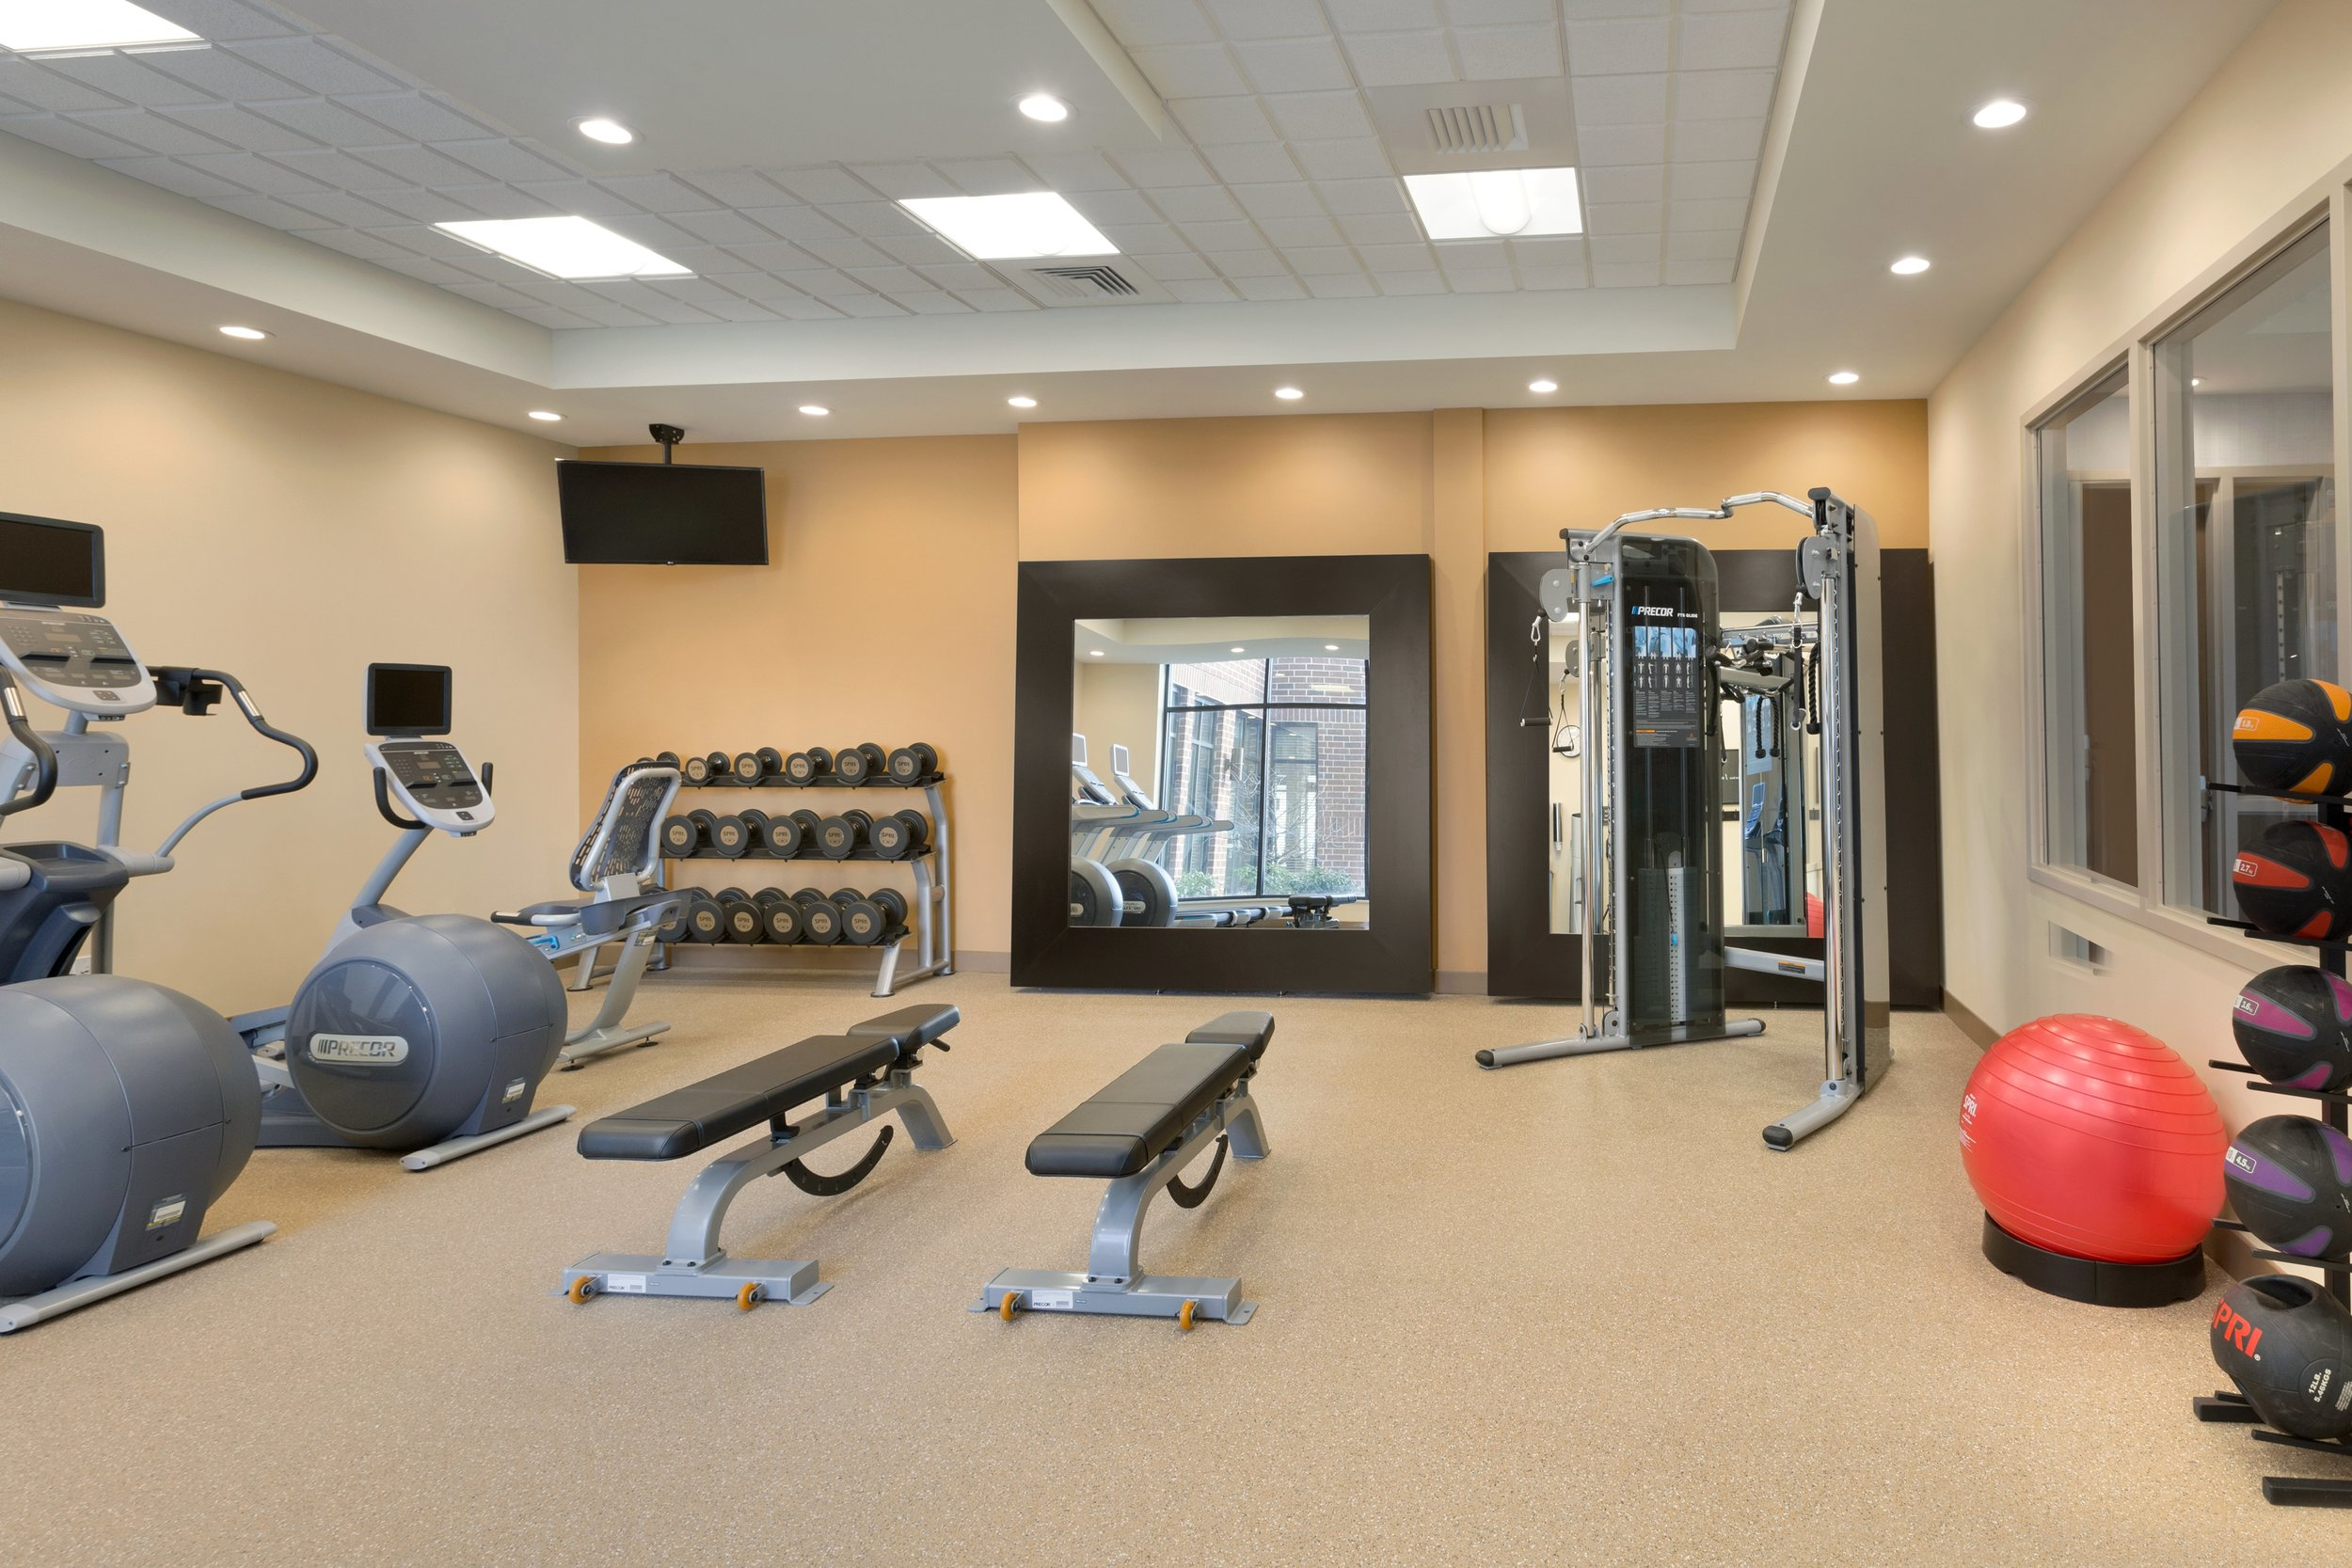 Hilton Garden Inn Pittsburgh Airport South-Robinson Mall - Fitness Center - 1116451.jpg